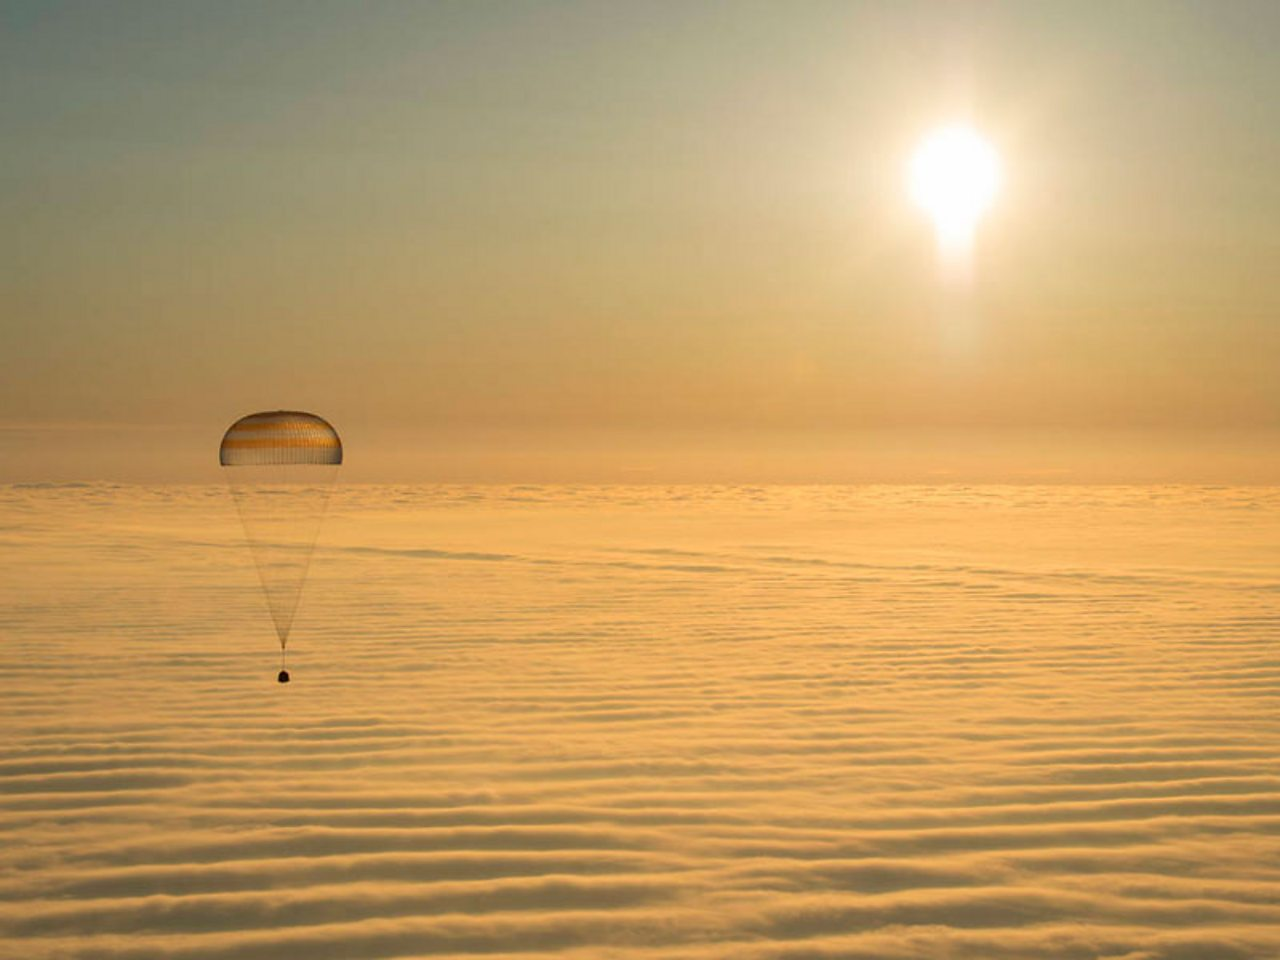 The Soyuz capsule hanging below a parachute returning to Earth.